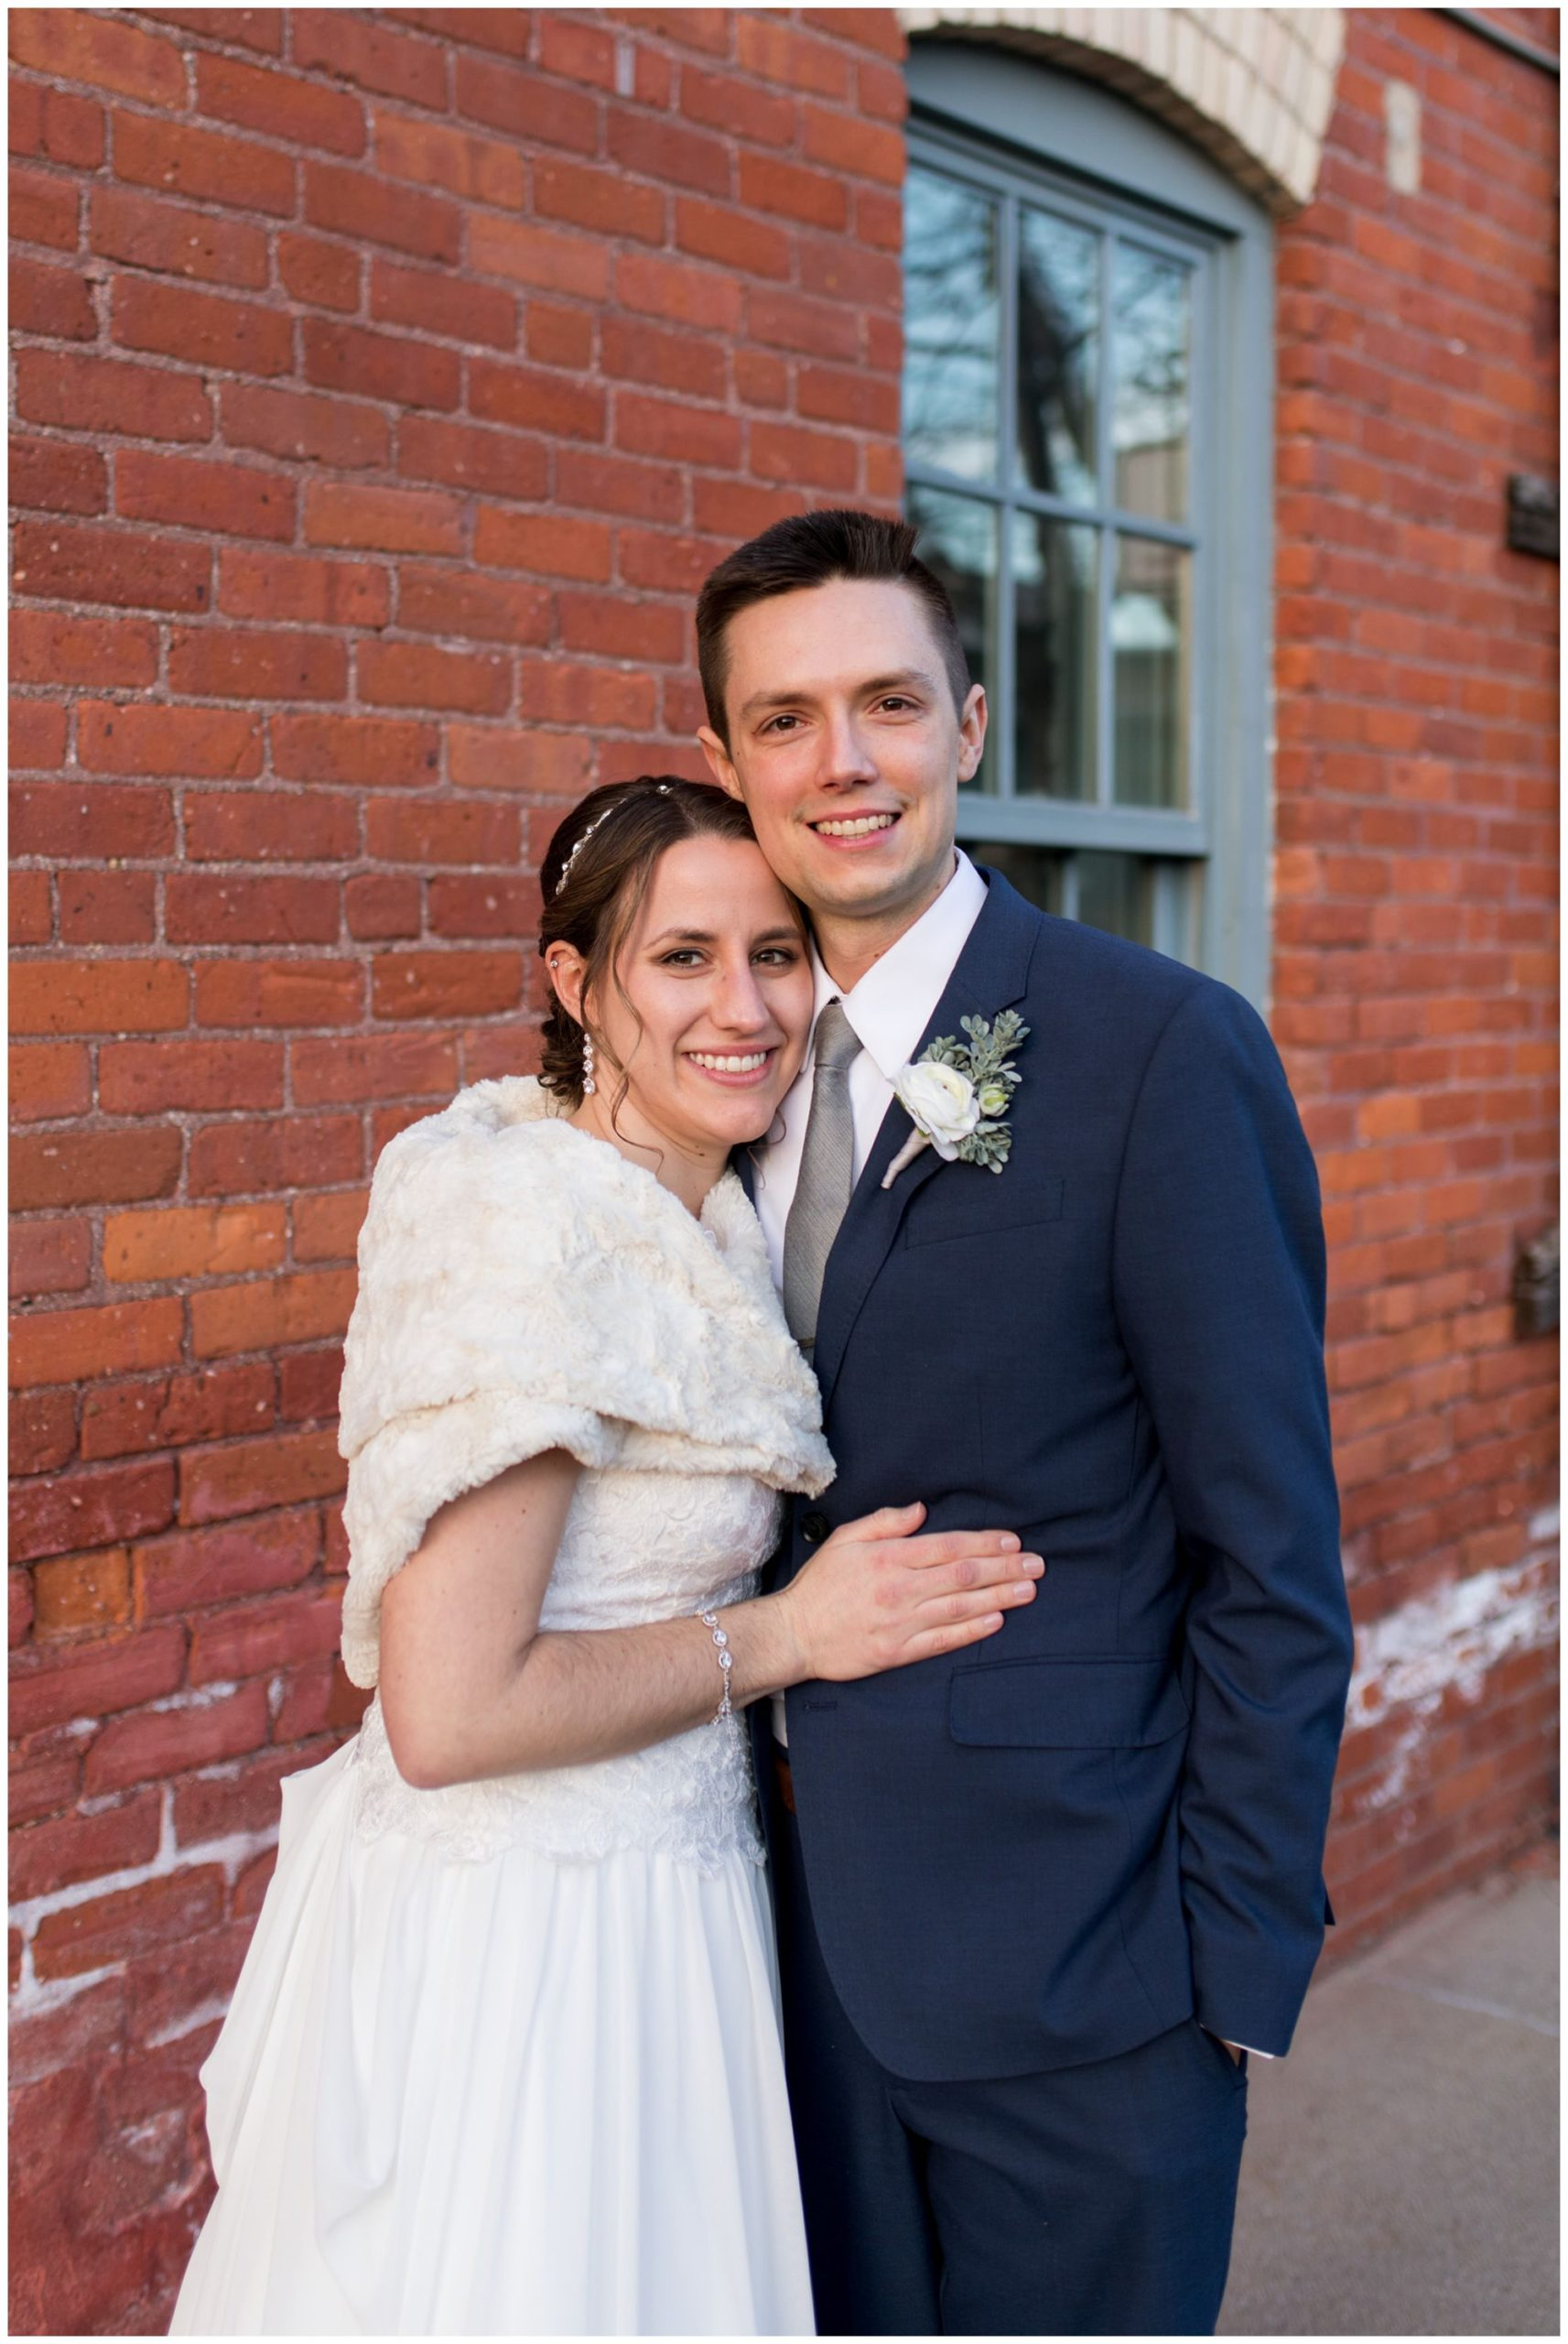 Goshen Indiana bride and groom wedding photos at Old Bag Factory